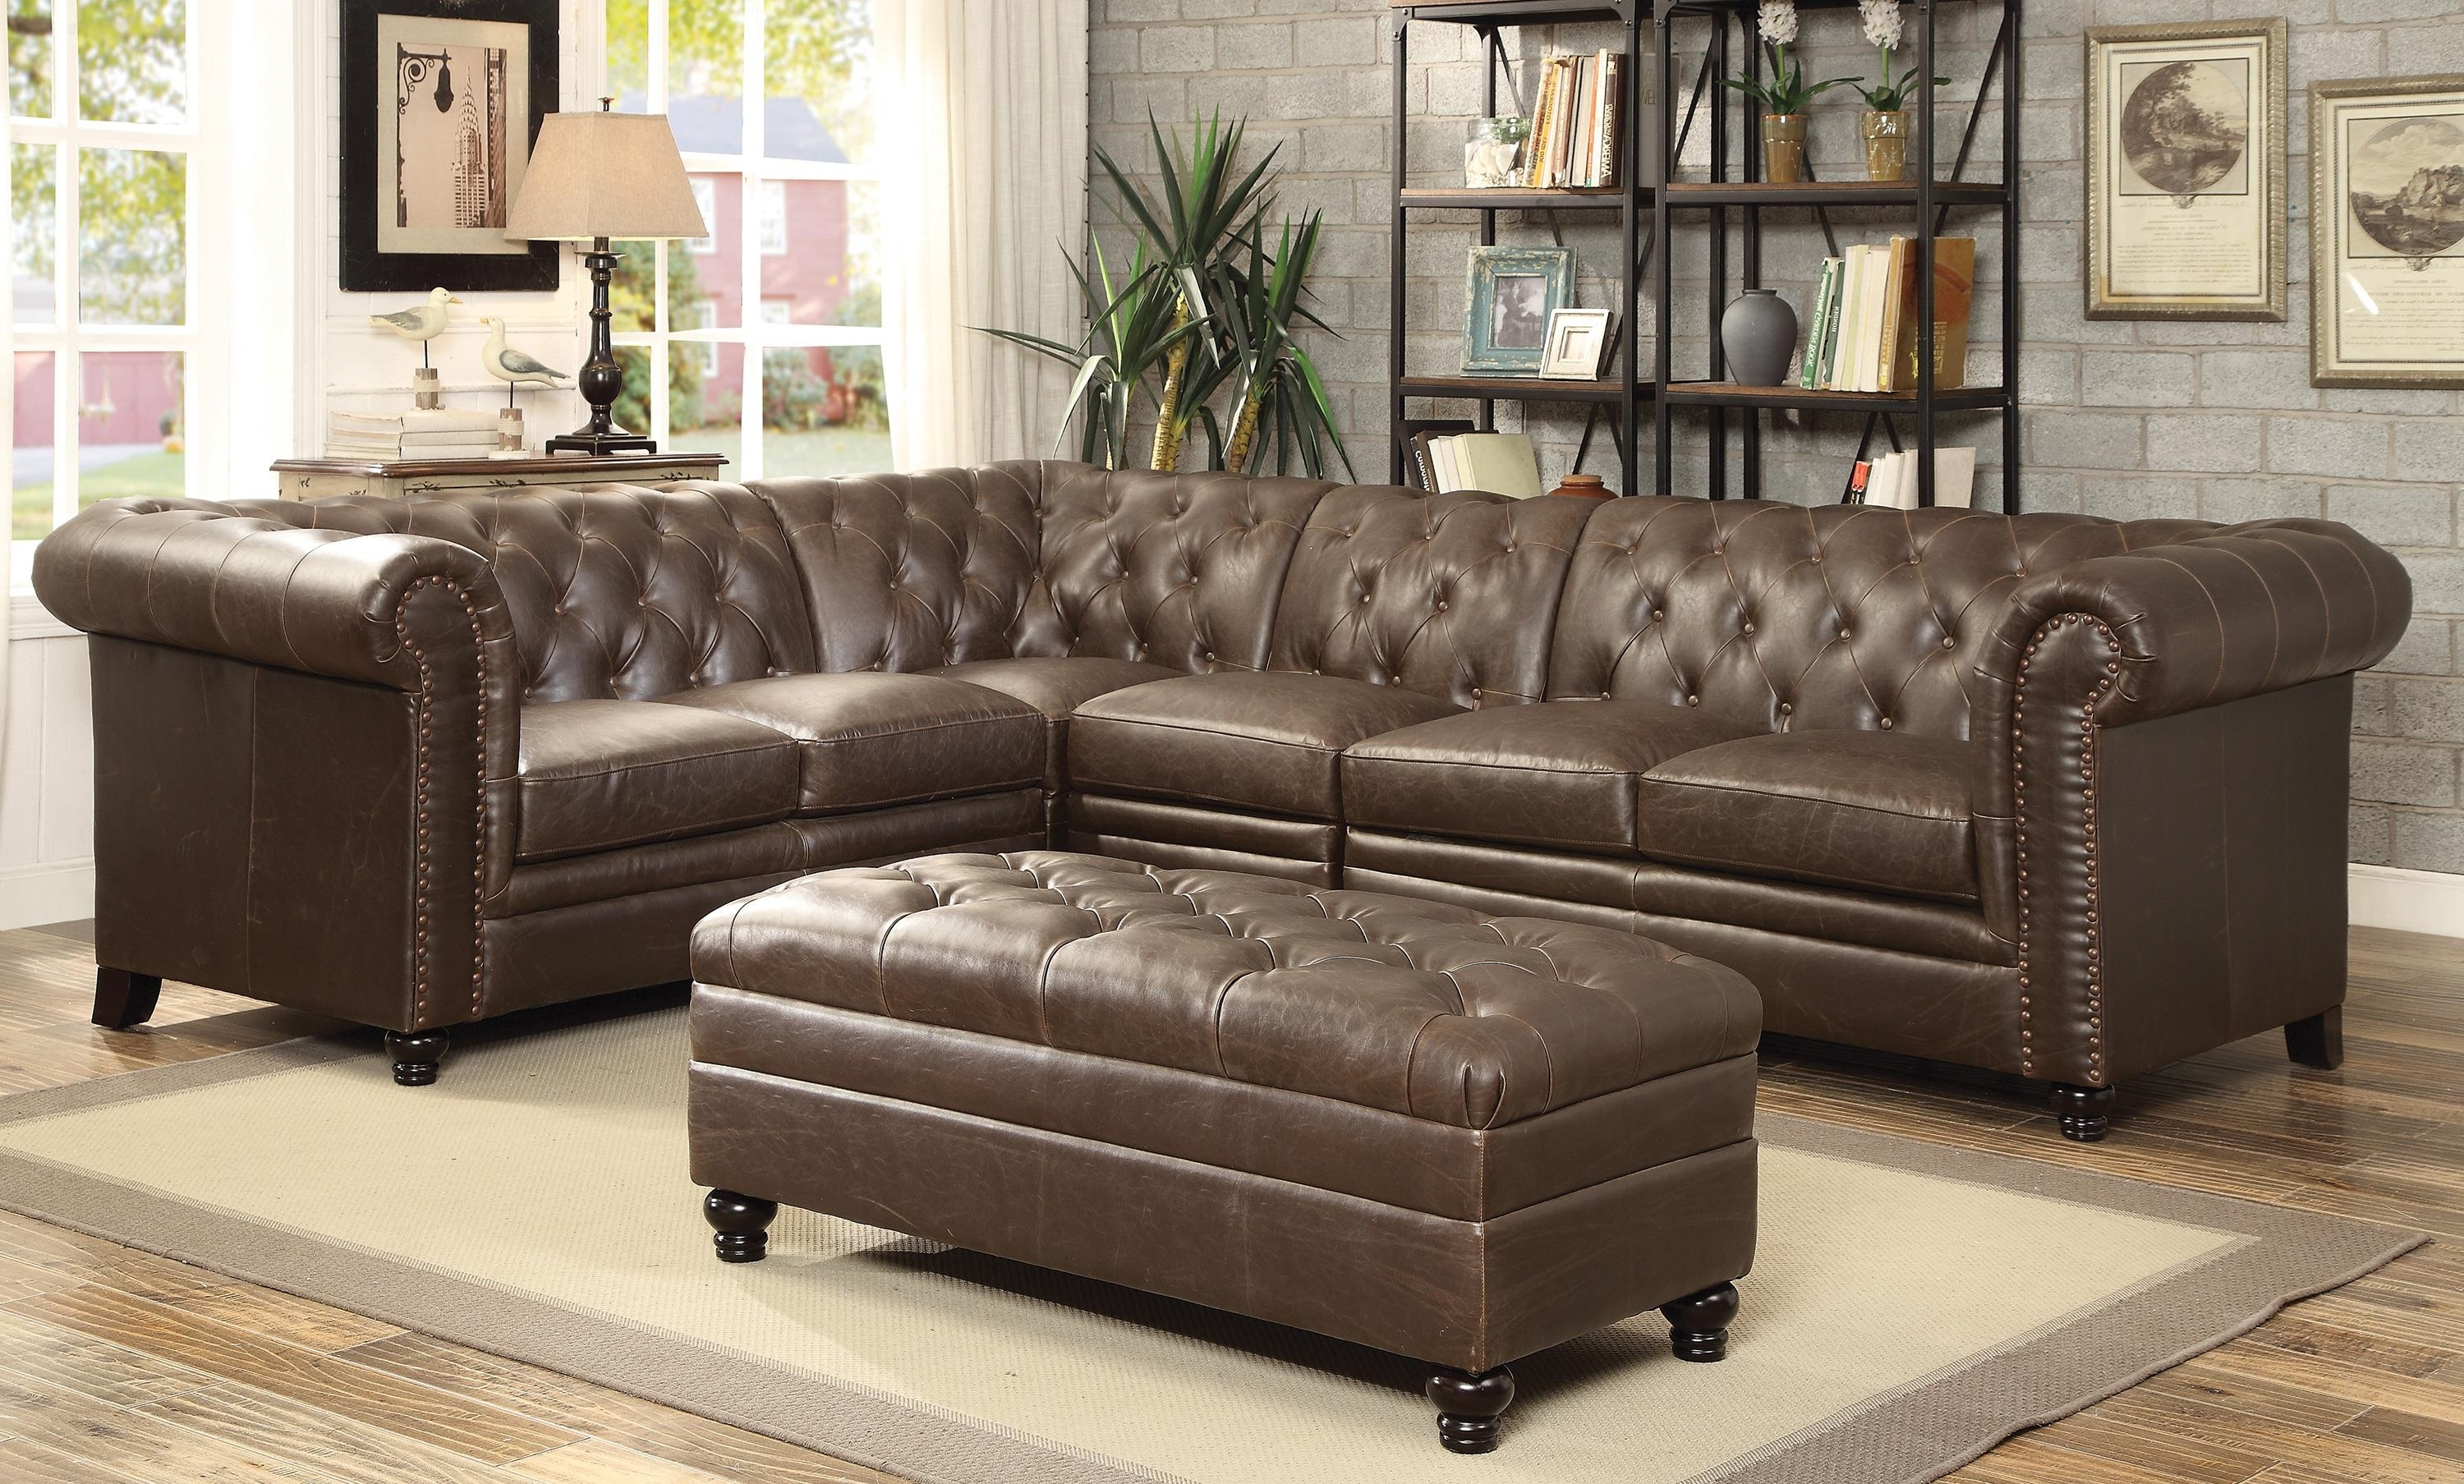 Rochester Ny Sectional Sofas Inside Well Known Tufted Sectionals Sofas – Hotelsbacau (View 18 of 20)